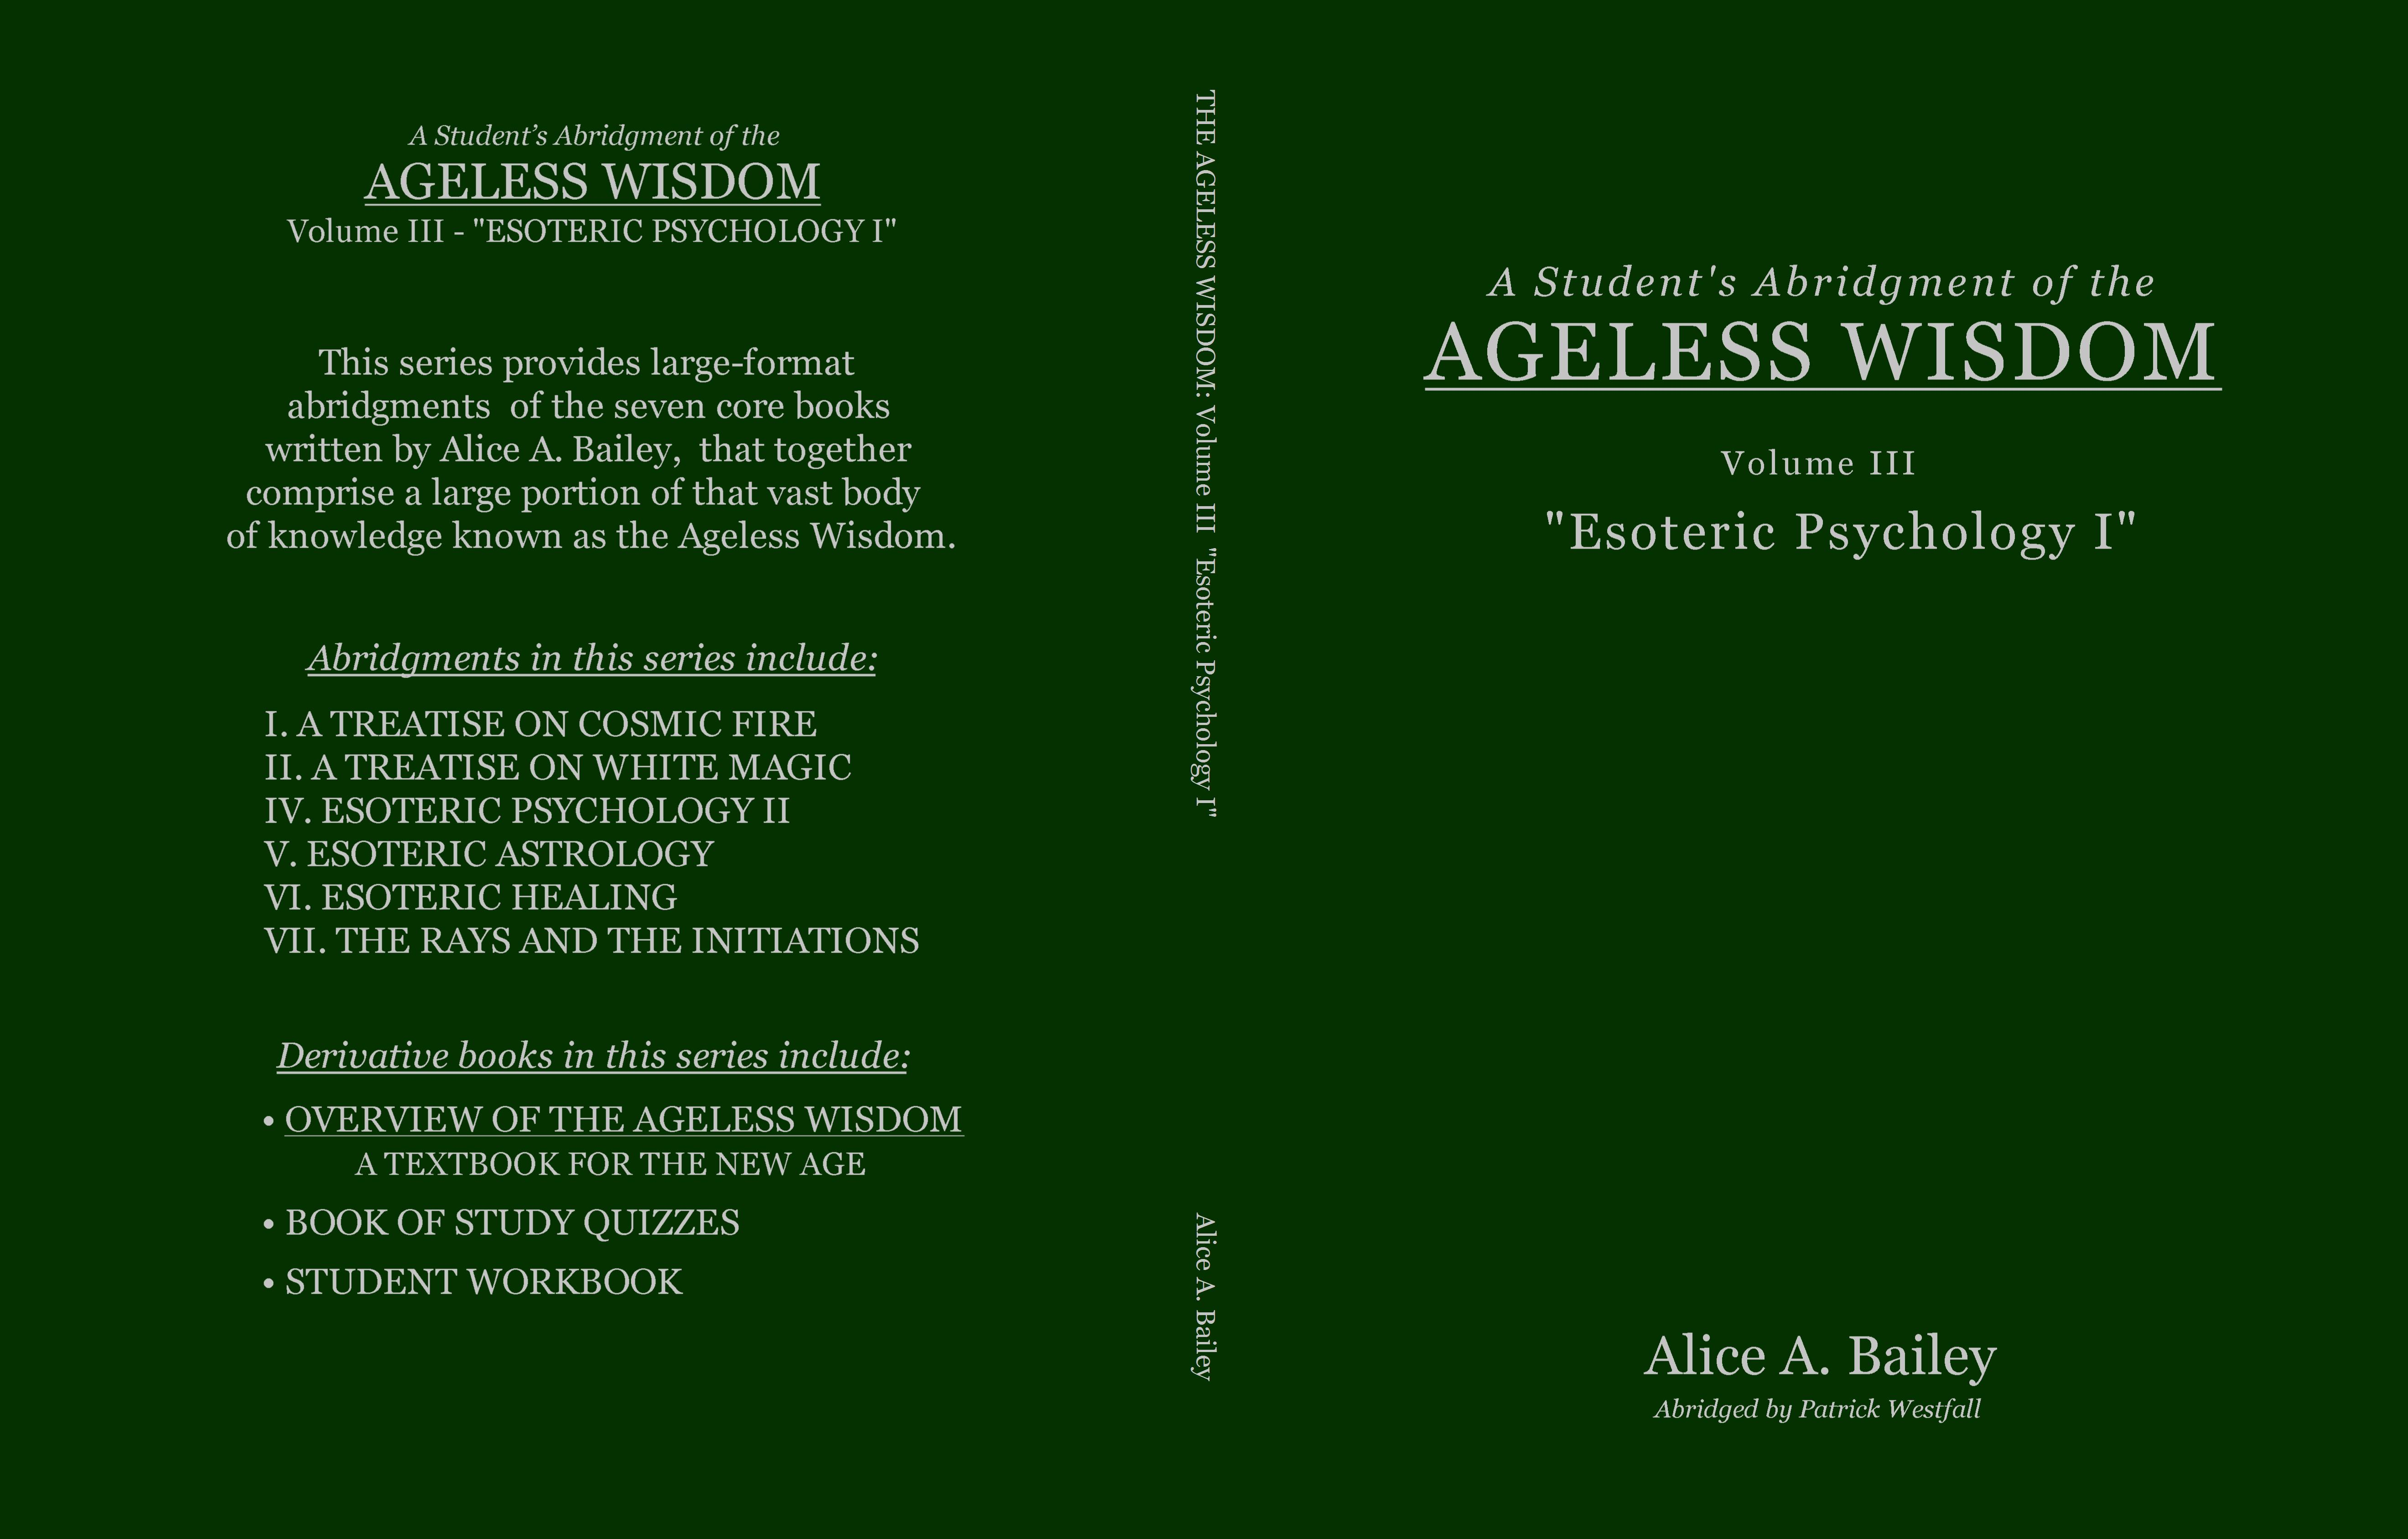 A Student's Abridgment of the Ageless Wisdom: Volume III